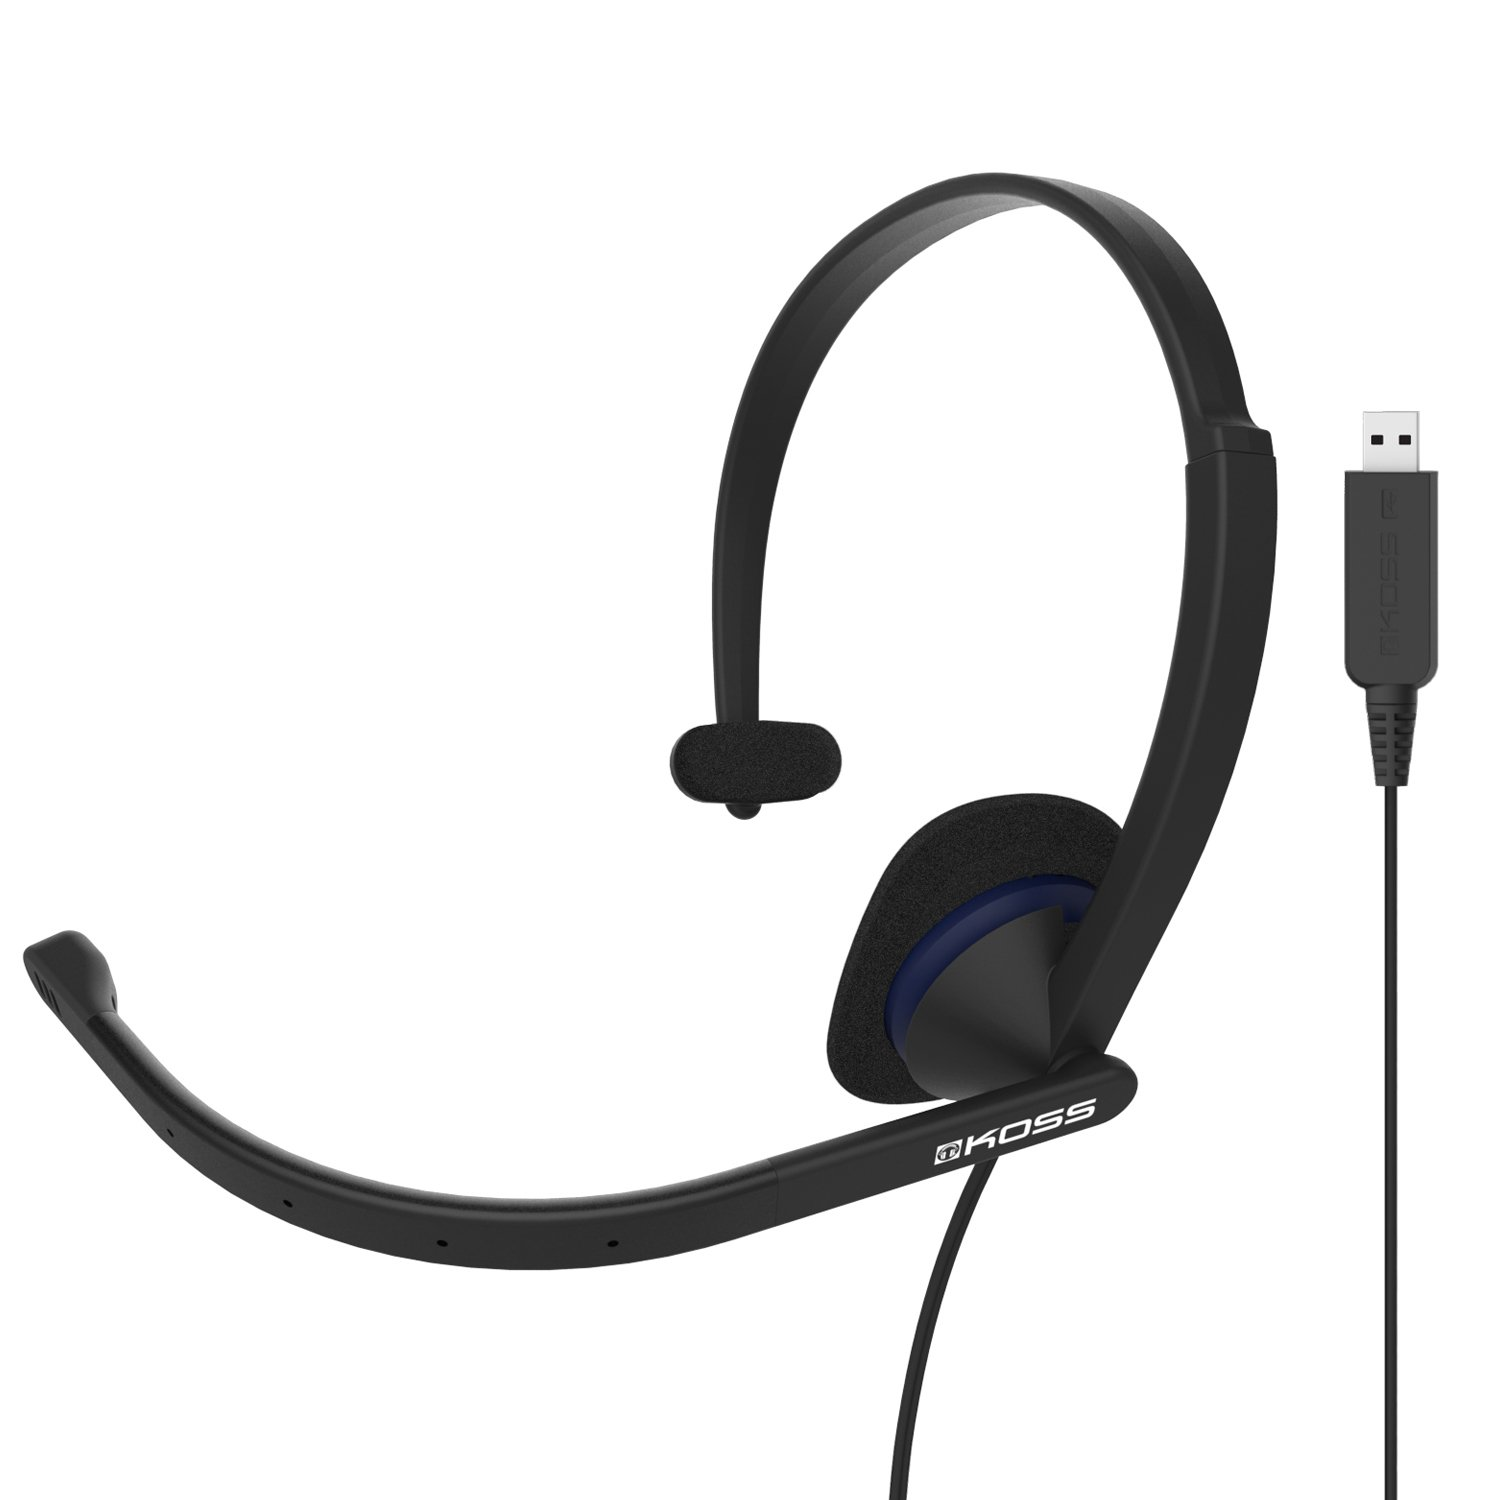 Koss CS195 USB Communication Headset Headphones | Single-Sided | USB Connection | Lightweight | D-Profile | Noise-cancelling Electret Microphone